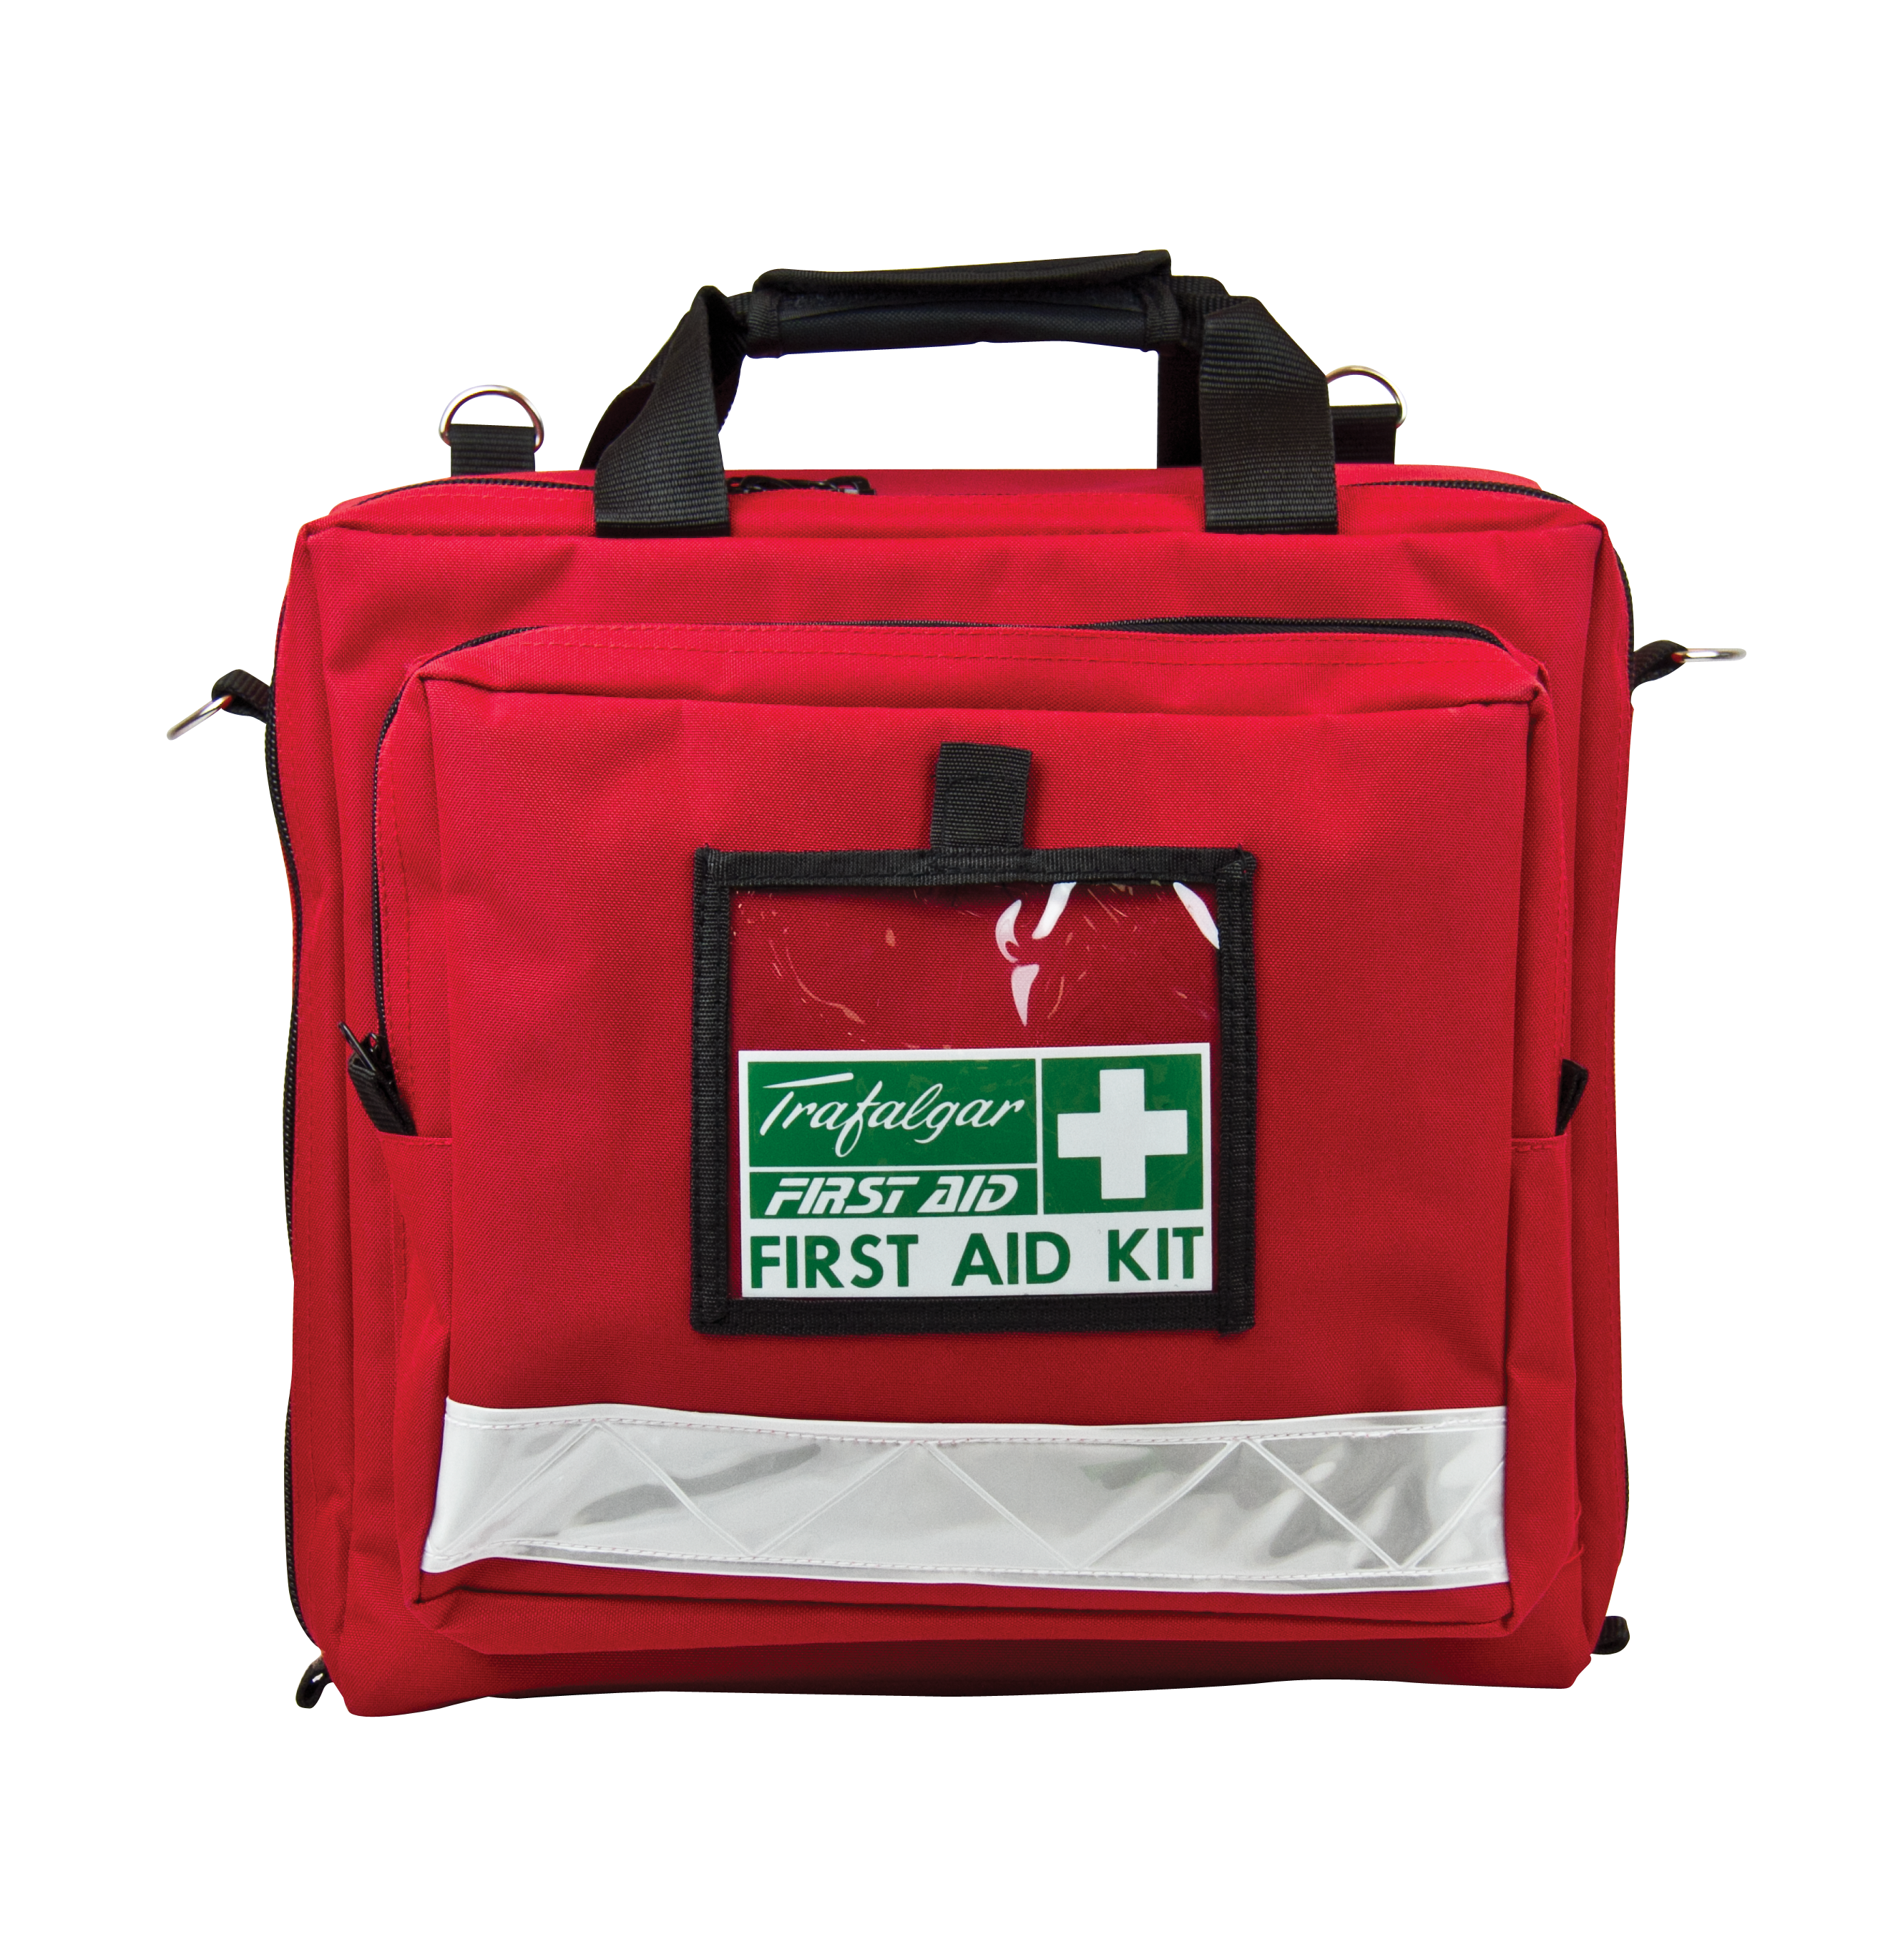 Trafalgar Portable Soft Case National Workplace First Aid Kit